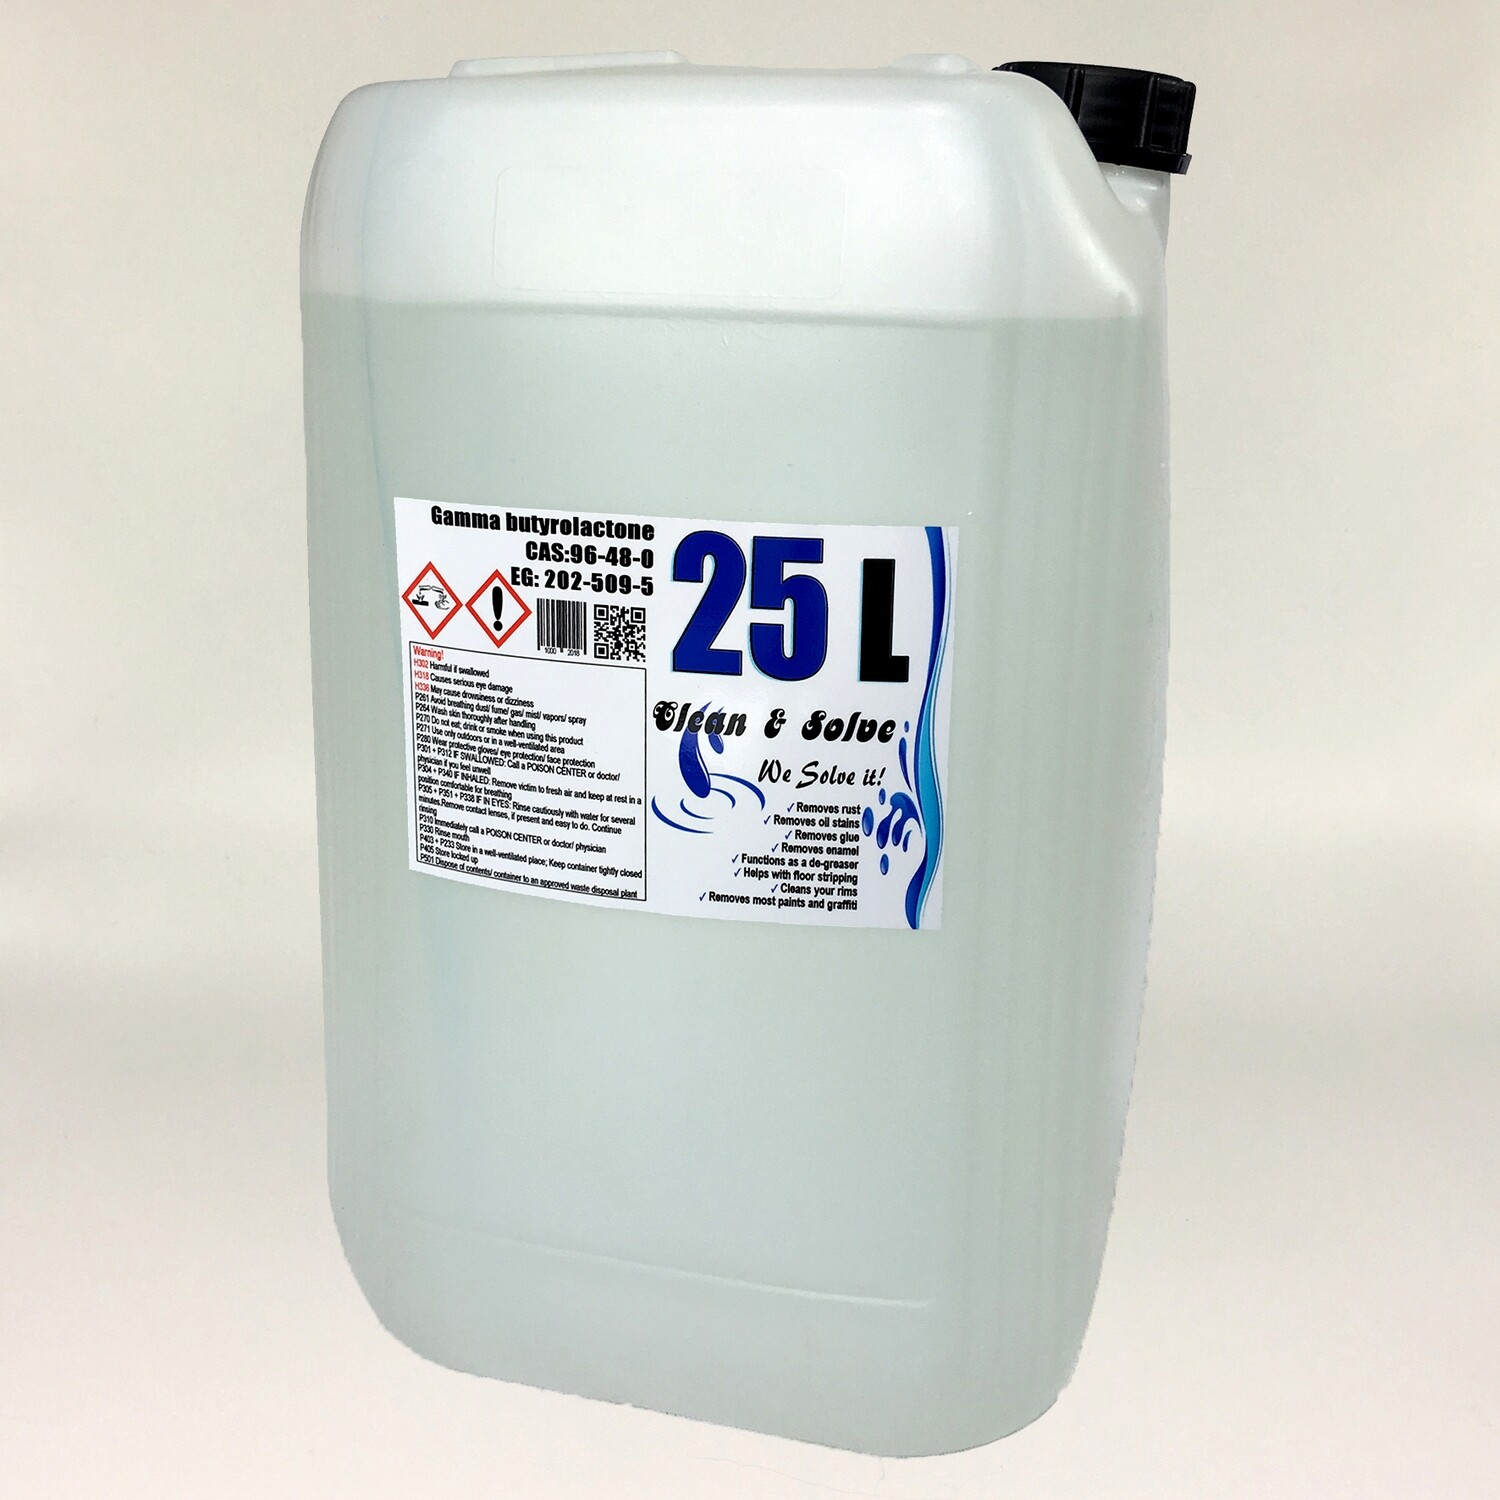 Multi Remover 25.000 ml Technical Grade Canister + with every order 1x 500 ml technical grade Free!